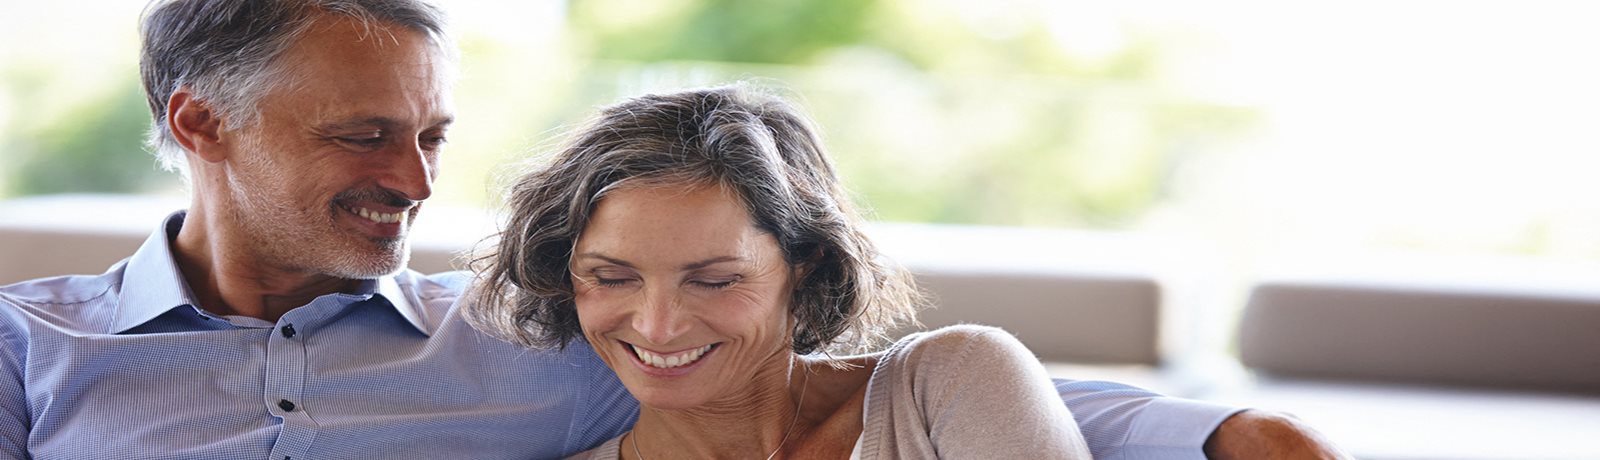 Man looking over woman's shoulder as they both smile and read an electronic device